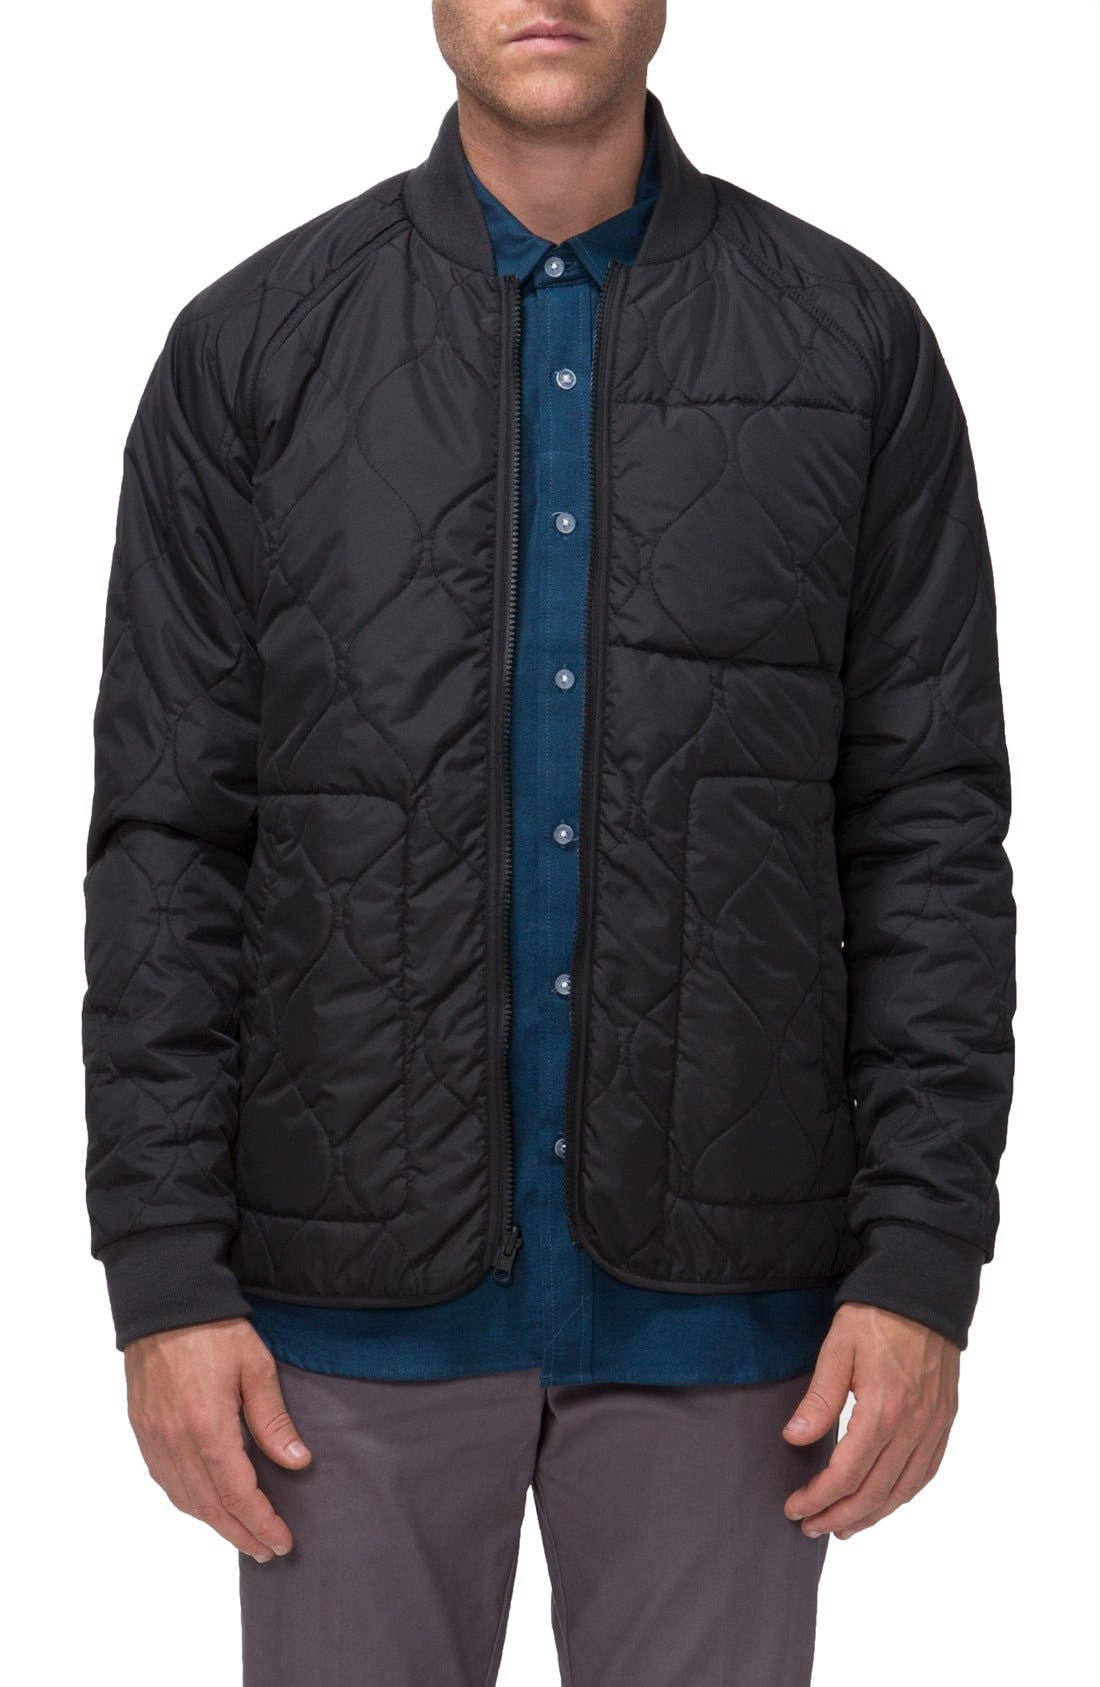 Fullton Zip-In Compatible Quilted Bomber Jacket,                             Main thumbnail 1, color,                             001